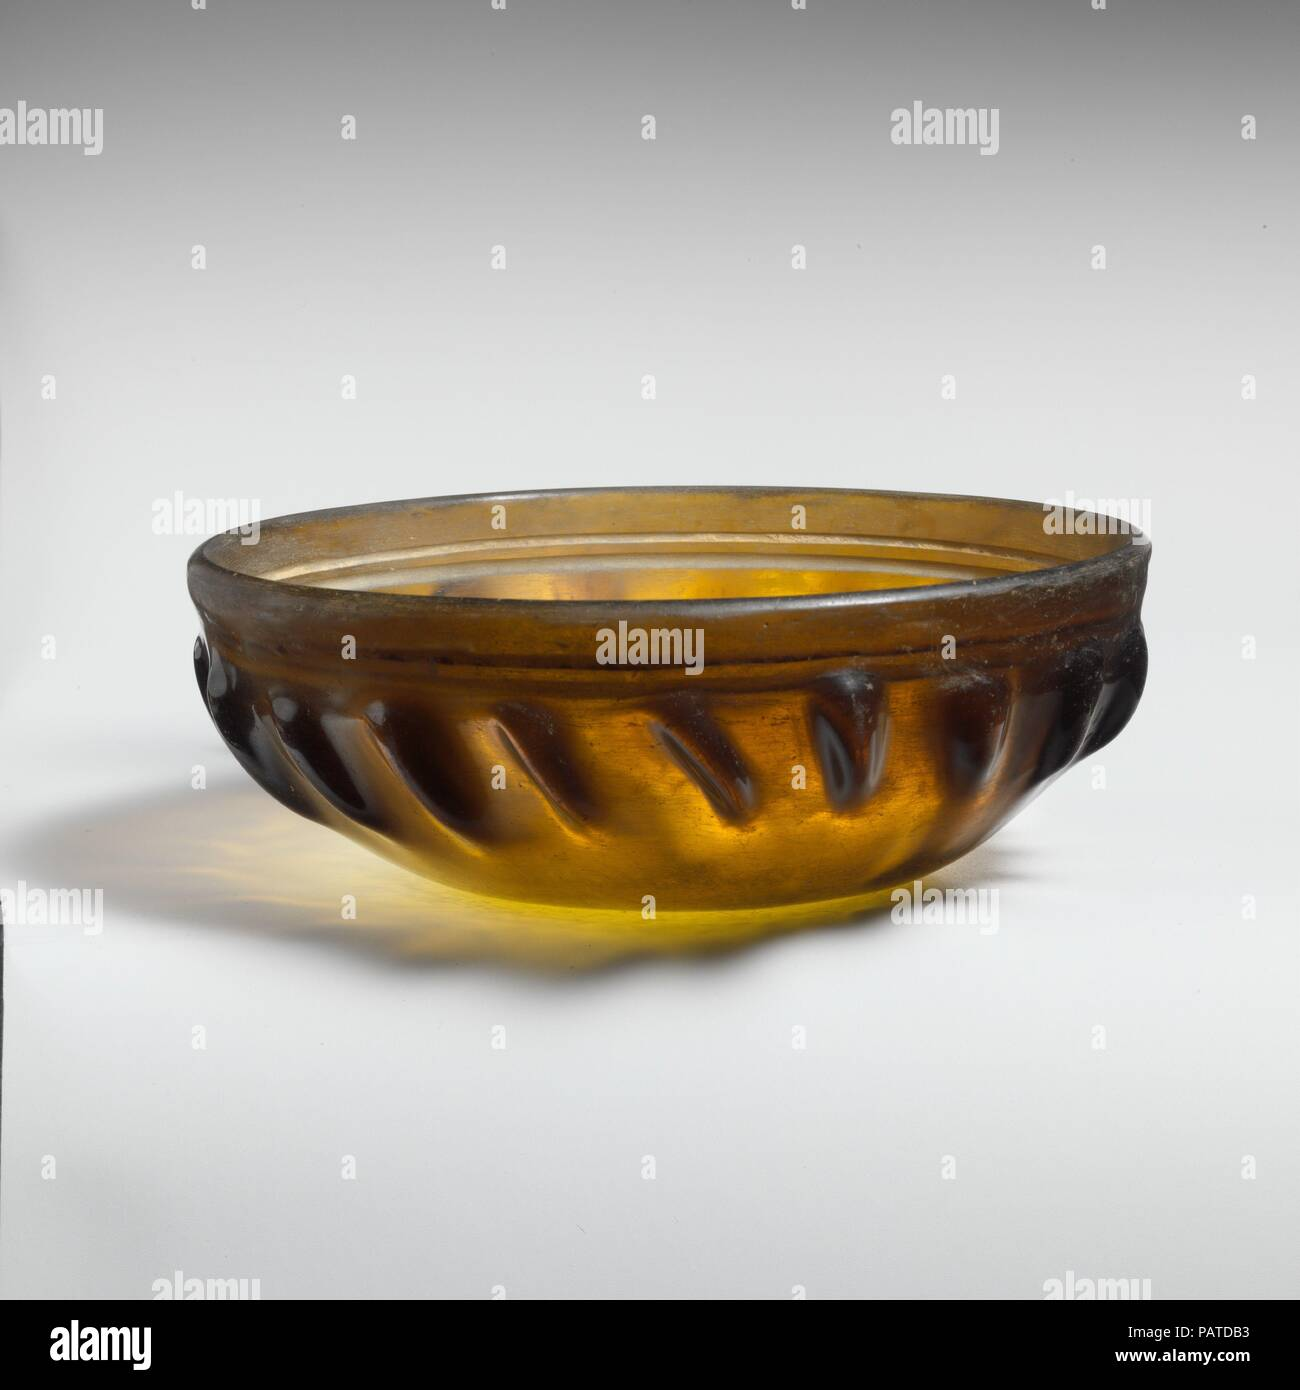 Pottery & Glass Beautiful Vintage Colored Glass Ashtray 22 Cm Wide X 8 Cm High High Quality And Low Overhead